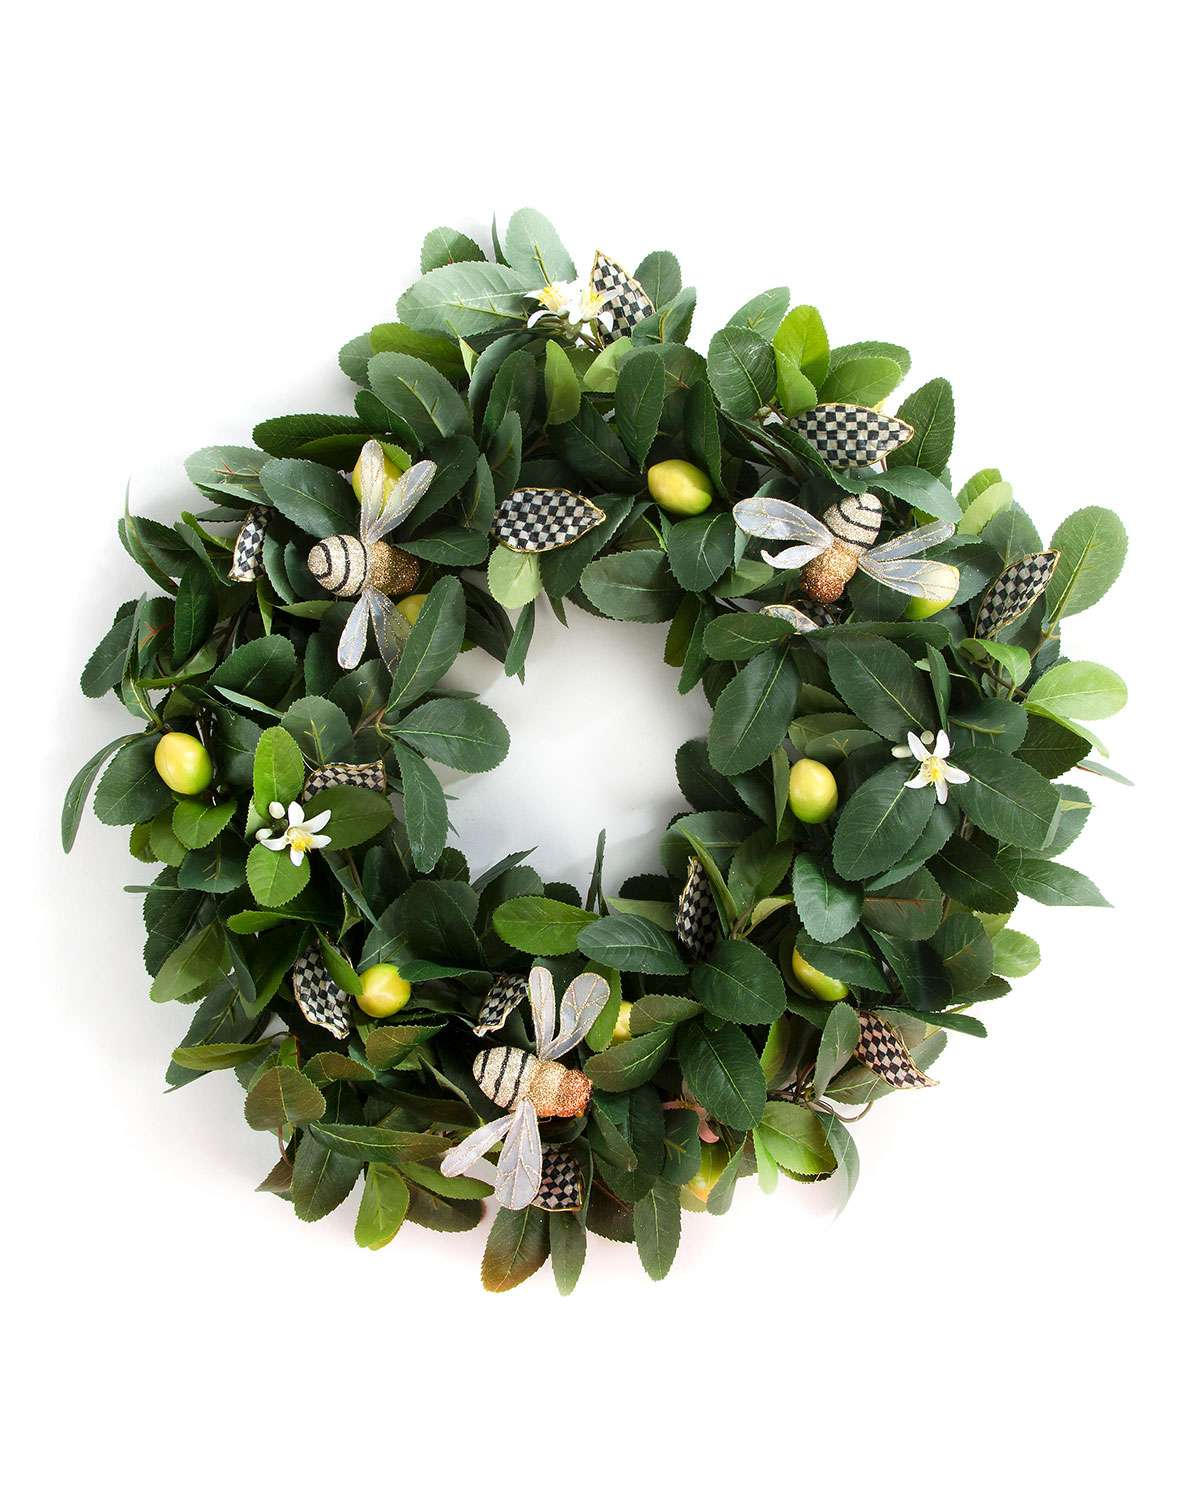 Queen Bee Lemon Wreath, 24